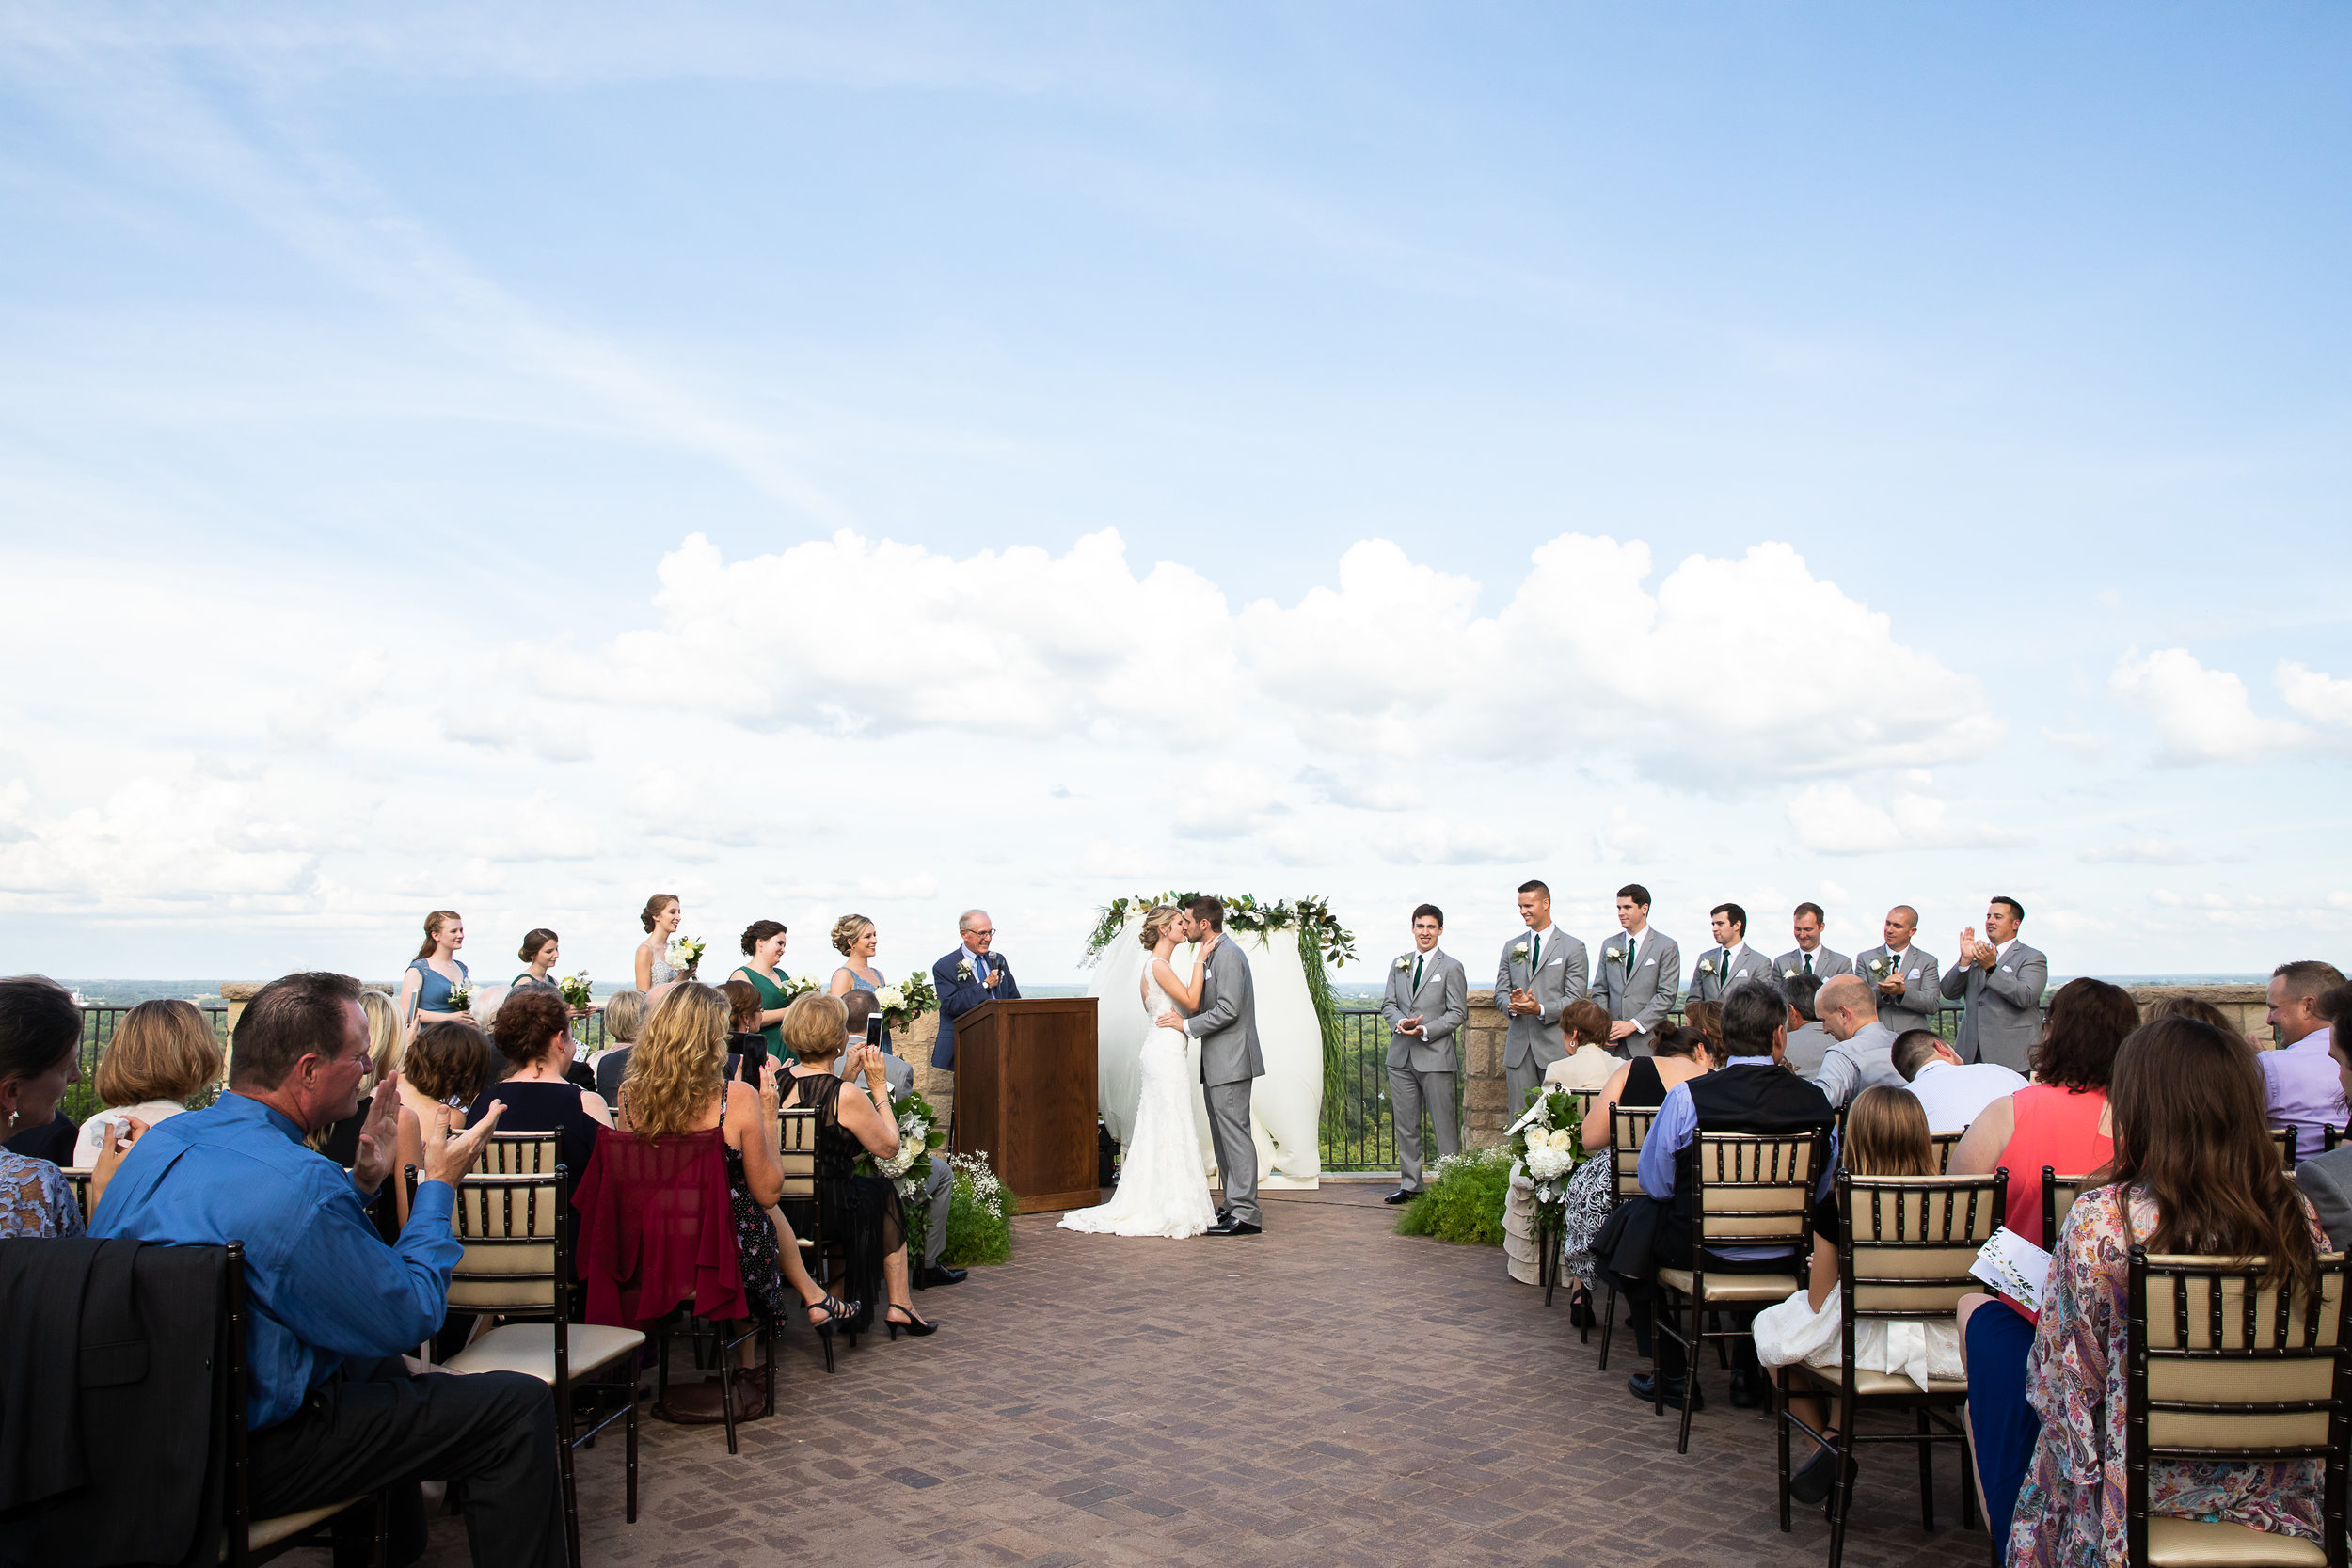 Kansas City Wedding Photography at the Oread in Lawrence by Merry Ohler